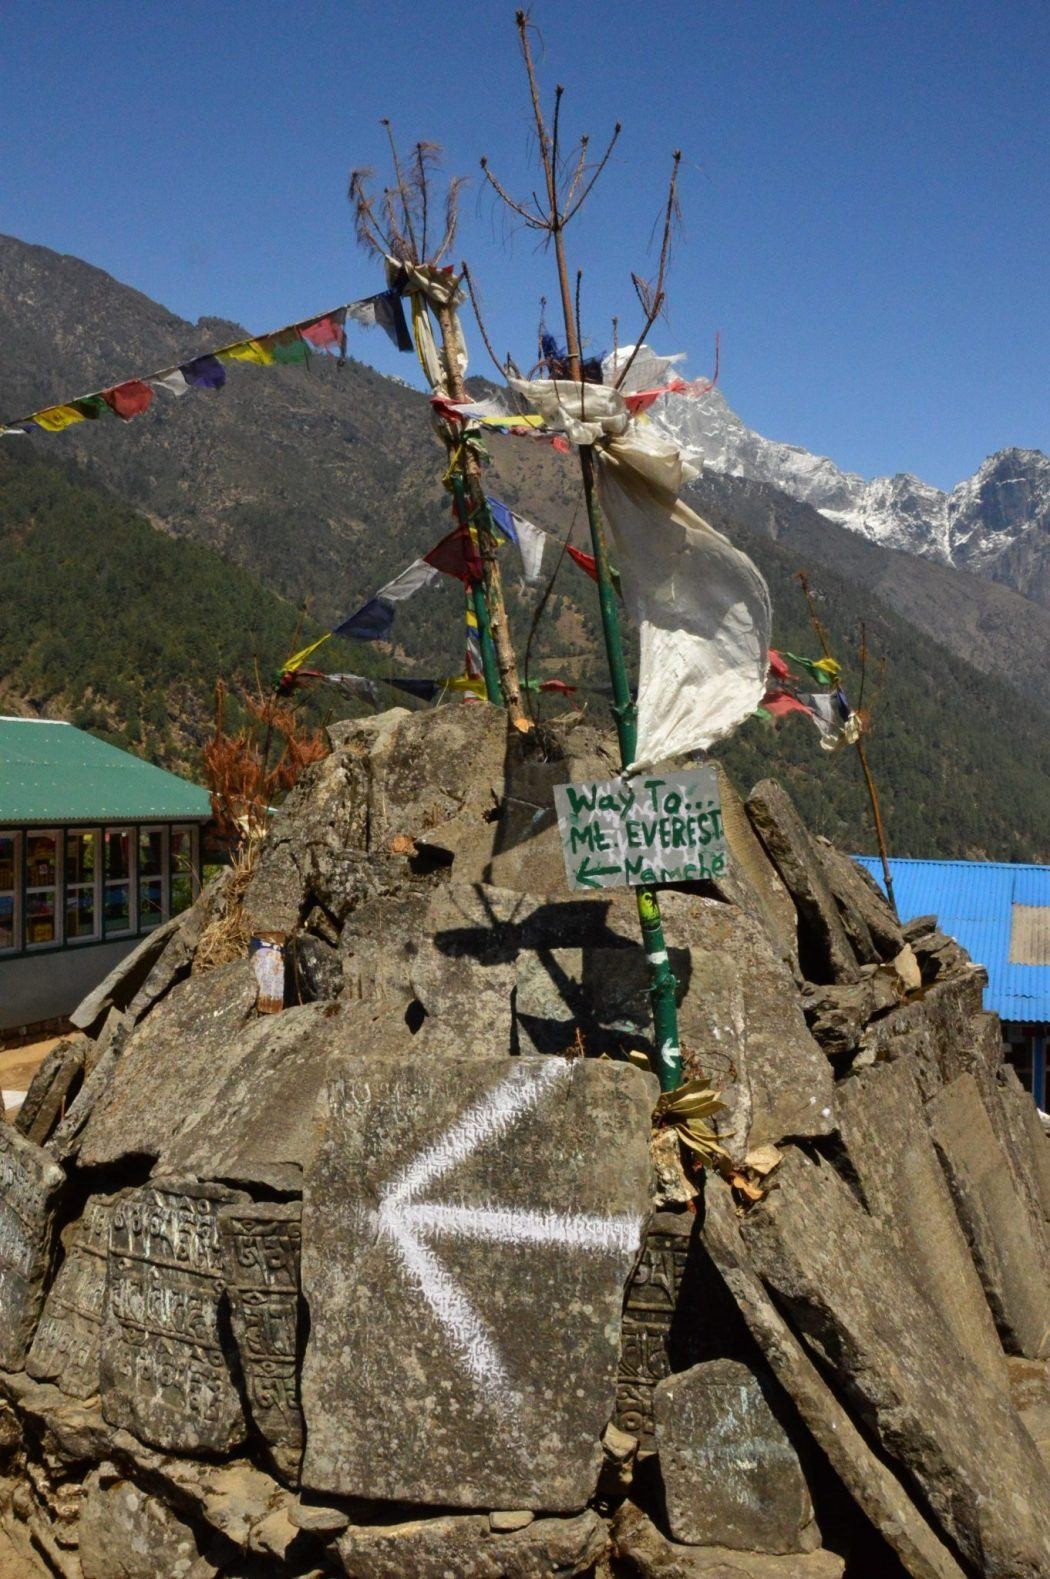 sign saying way to mt everest on a stack with prayer flags nepal